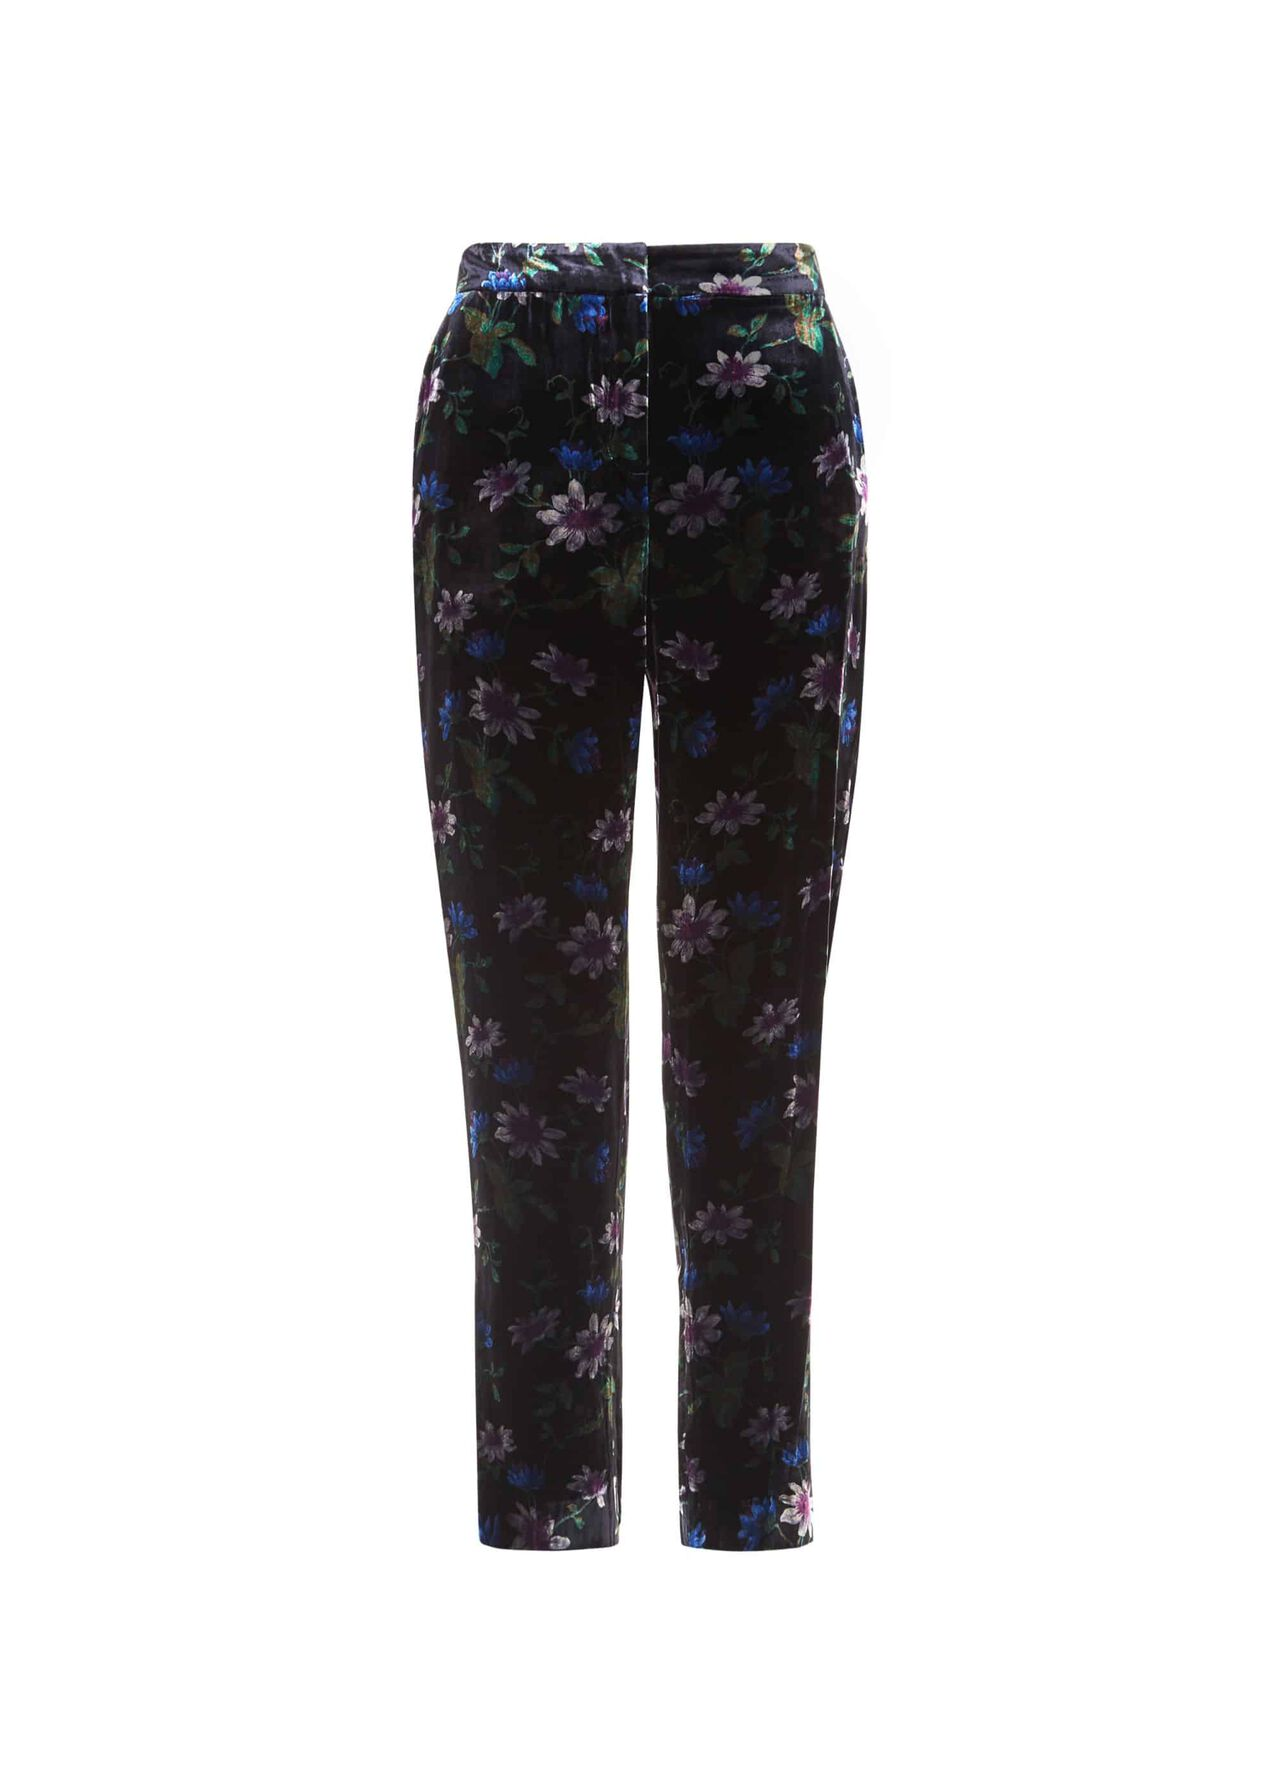 Passionflower Velvet Trousers Black Multi